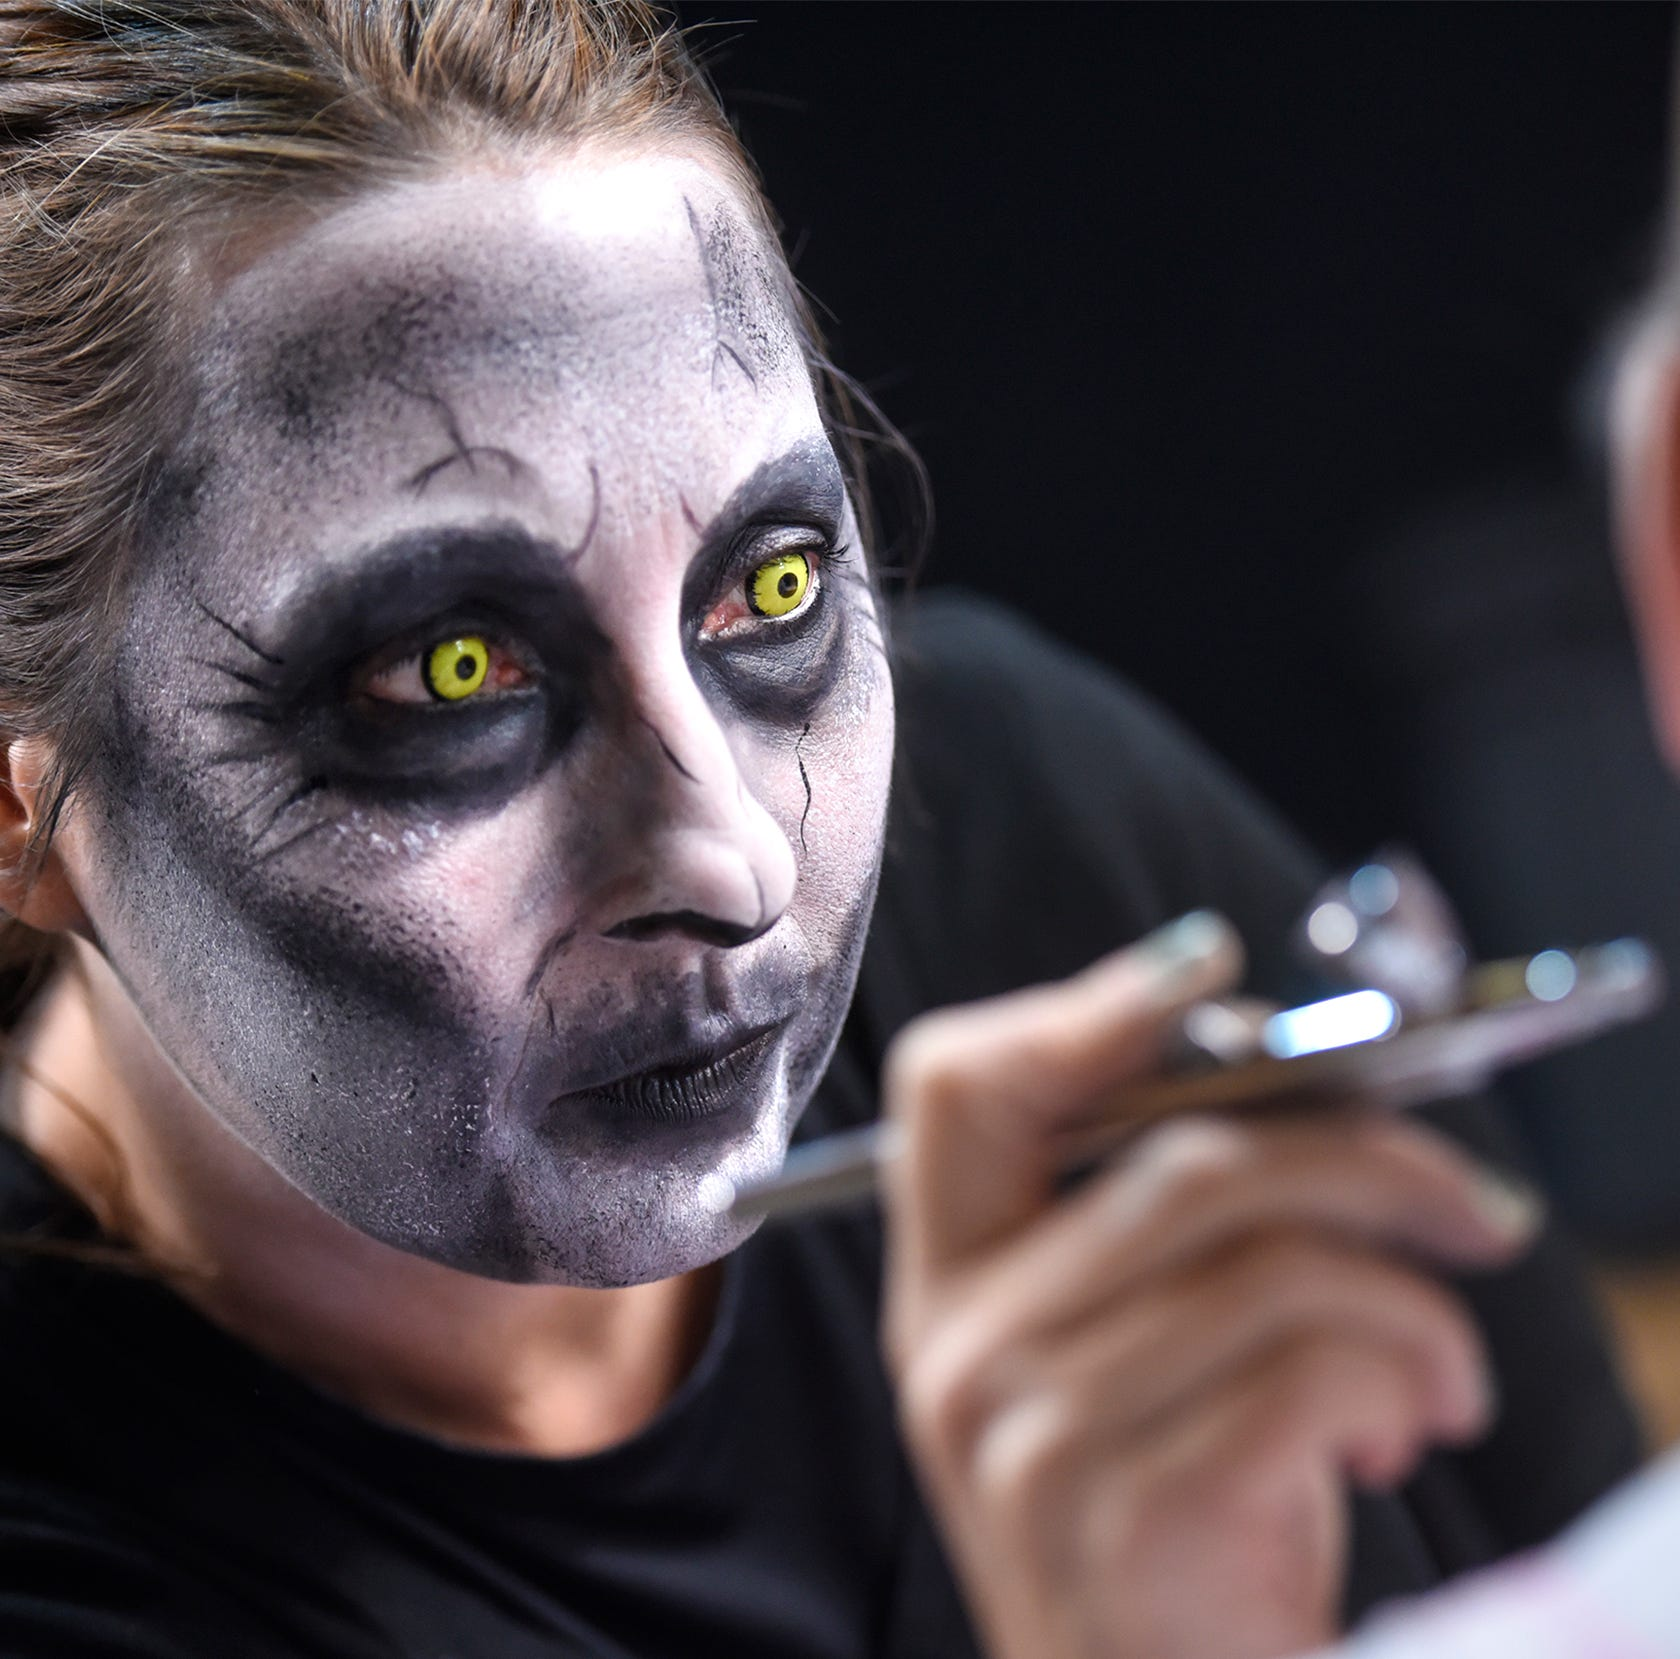 Behind the screams: What it takes to run a favorite Halloween haunt